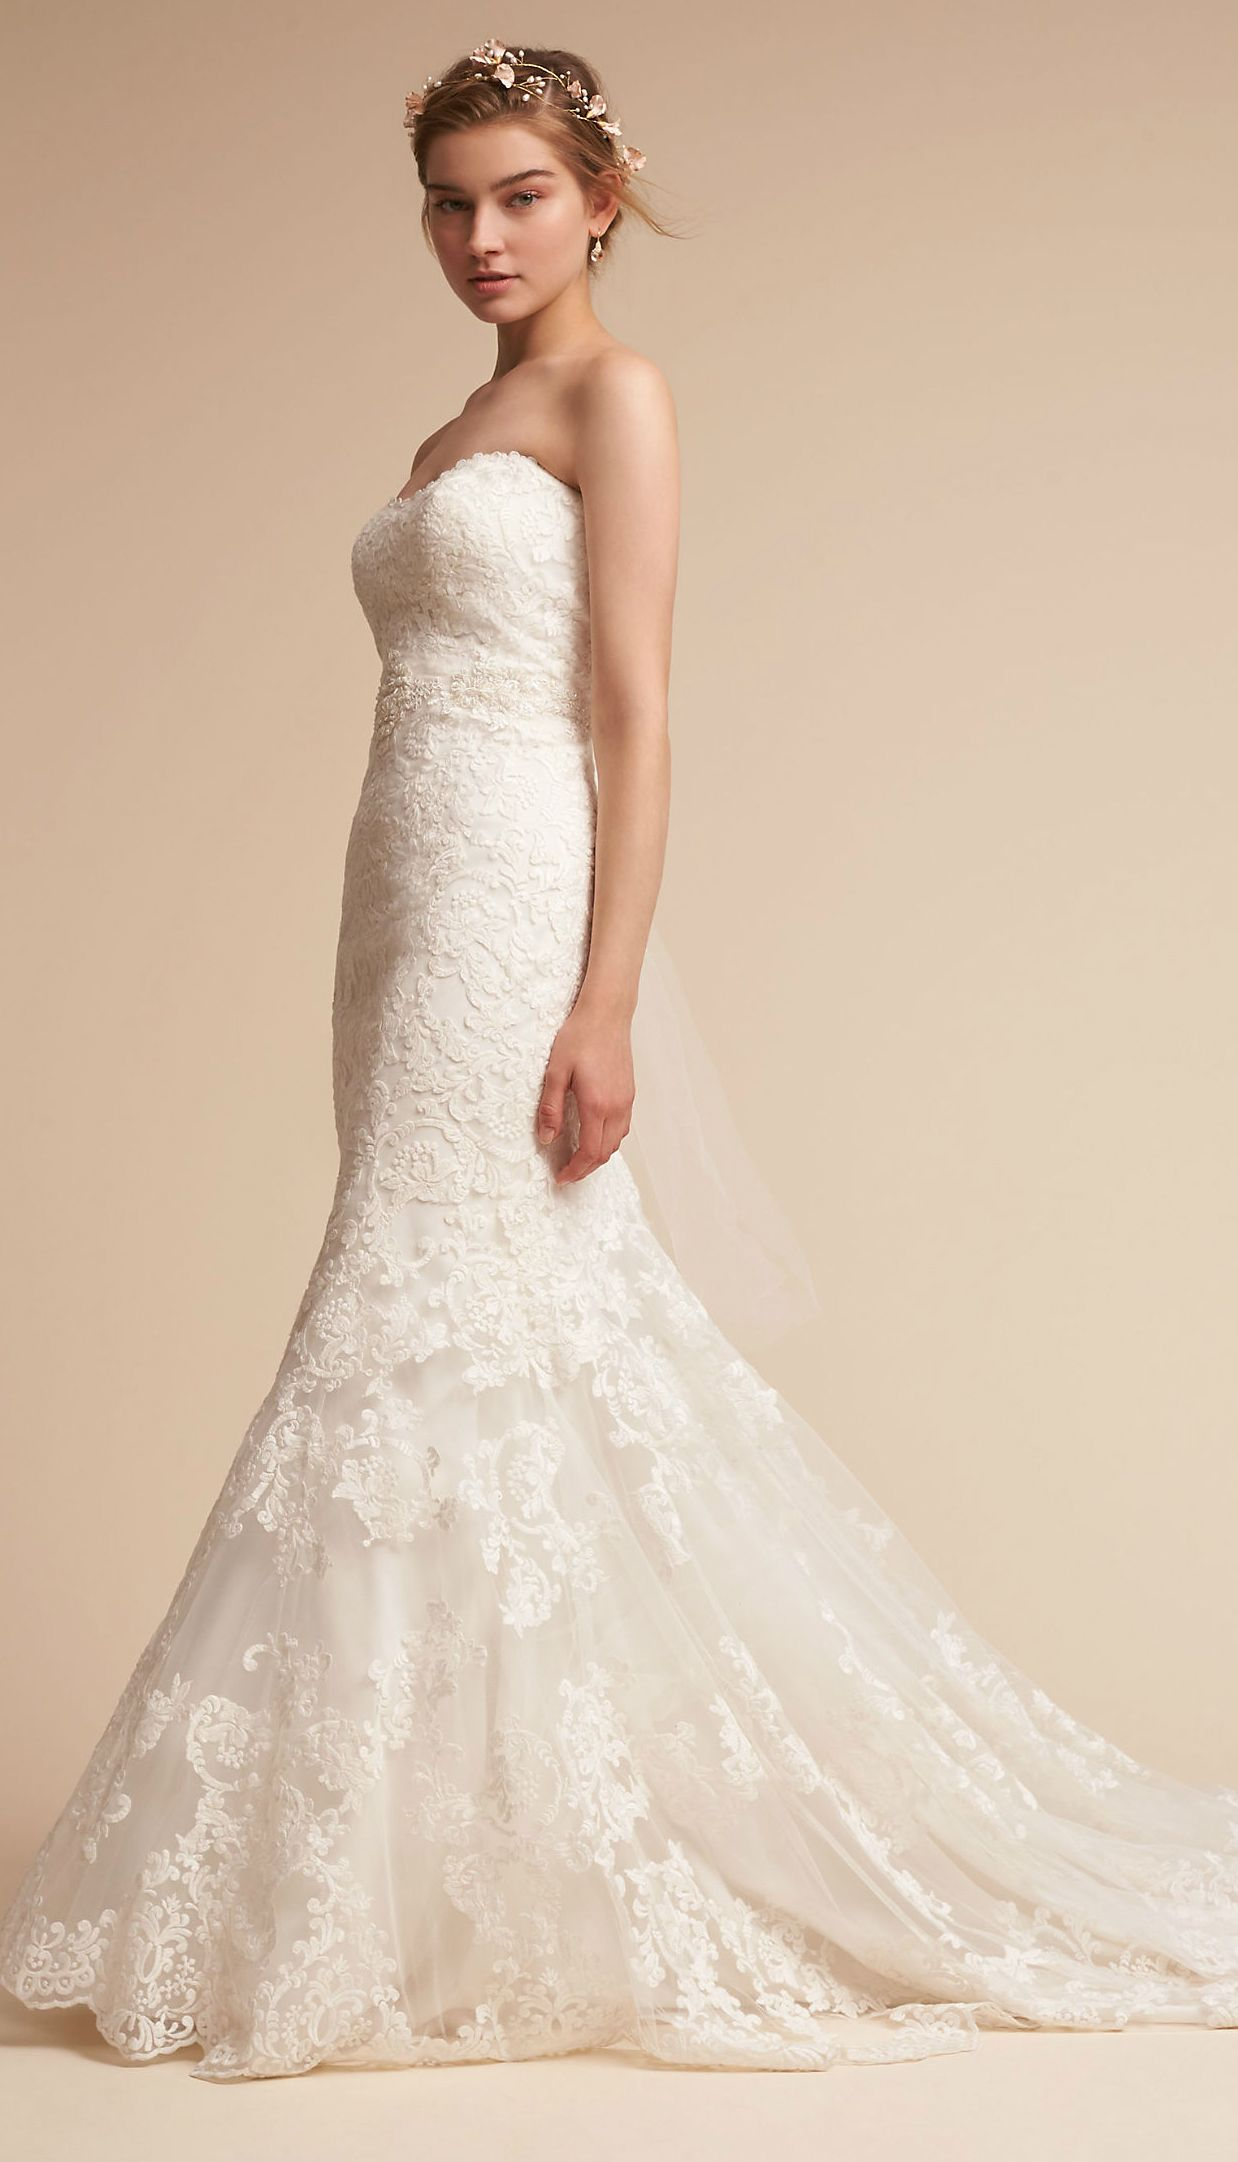 Fitted Strapless Lace Wedding Dress with Long Train